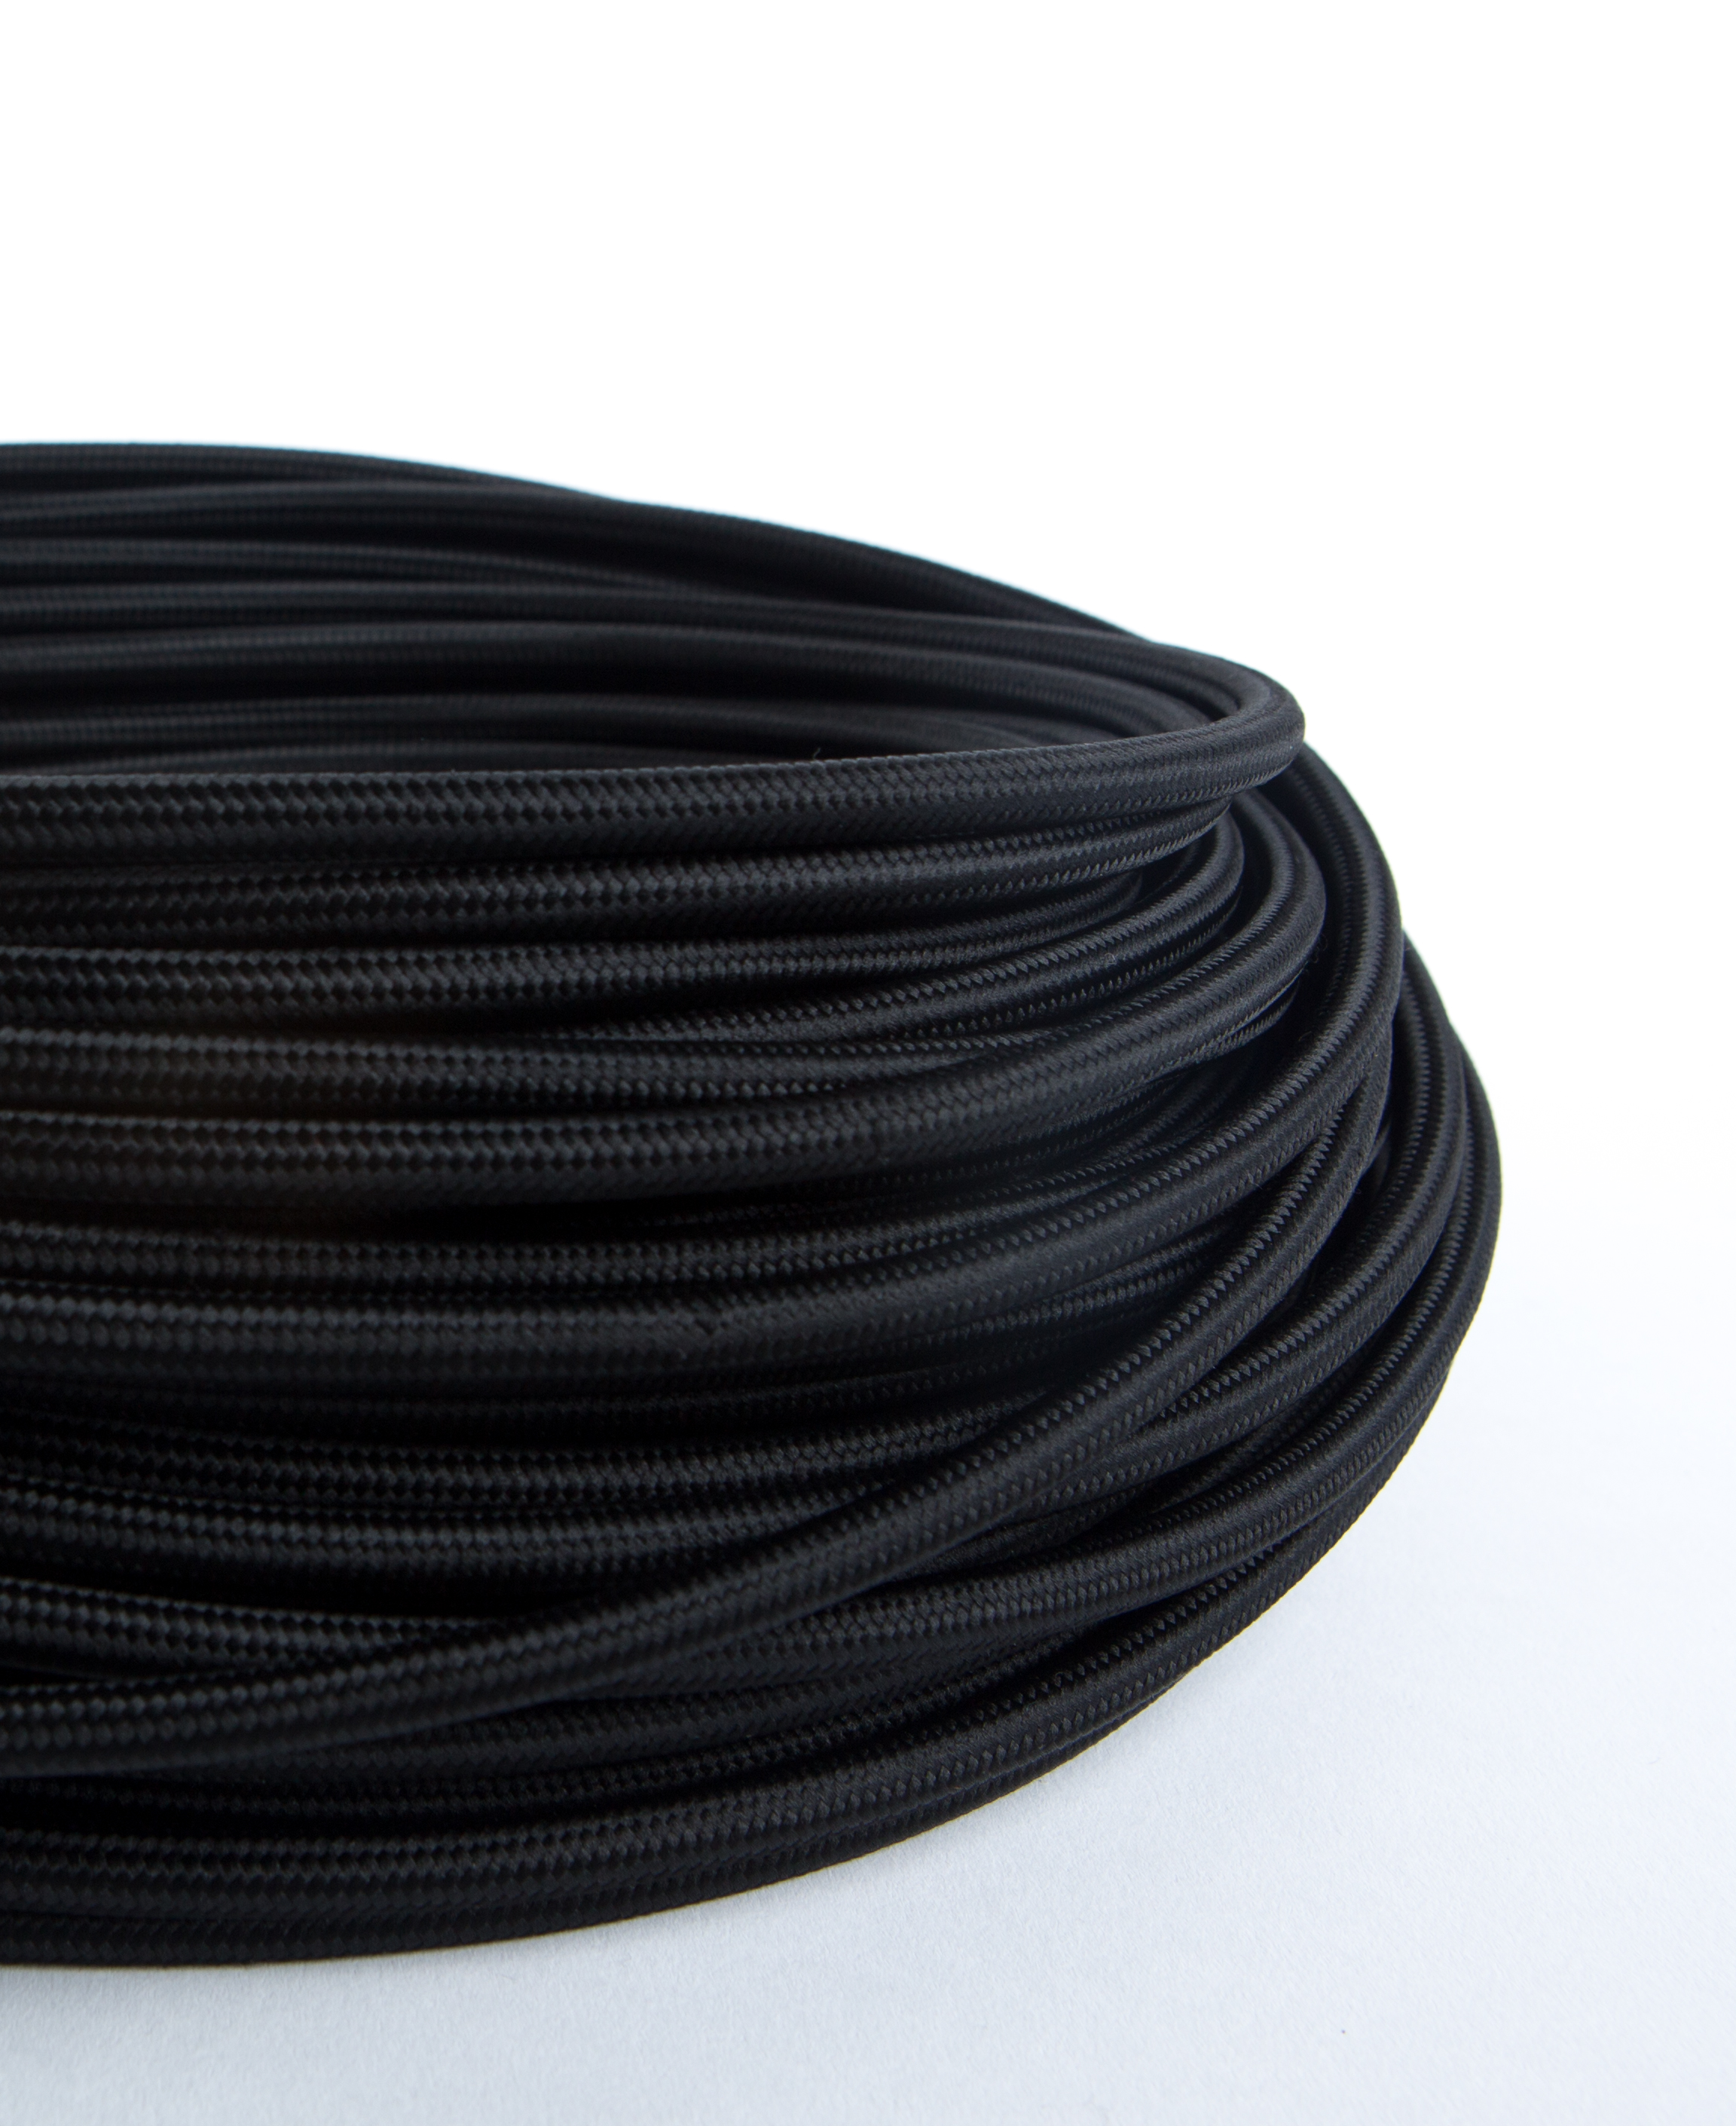 Oh So Black Fabric Cable for Lighting 8 Amp 3 Core CE Certified